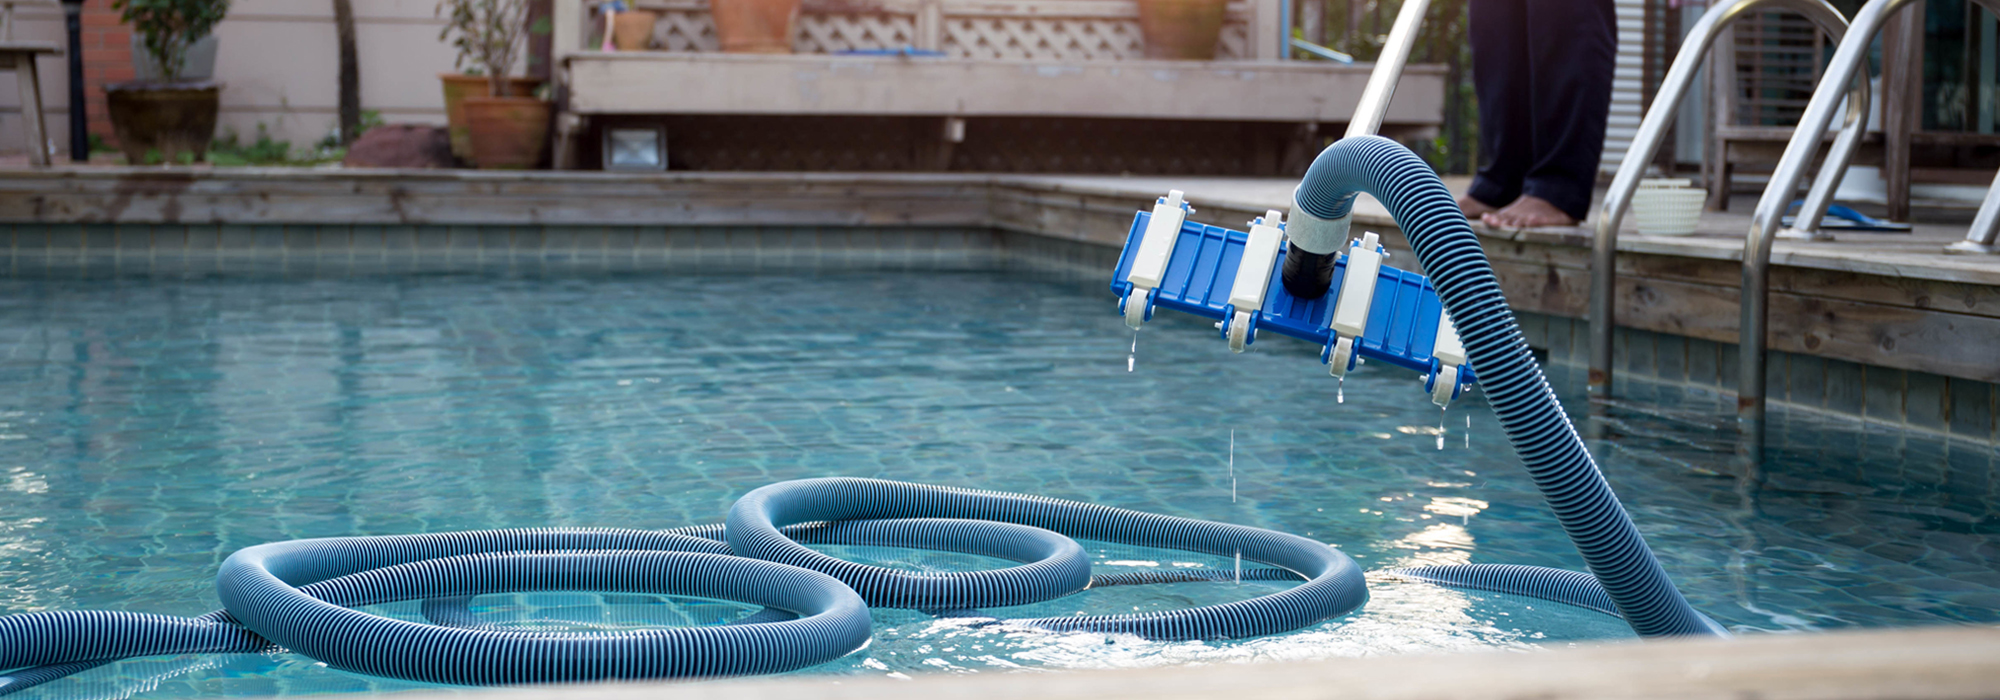 Swimming Pool Maintenance & Repair